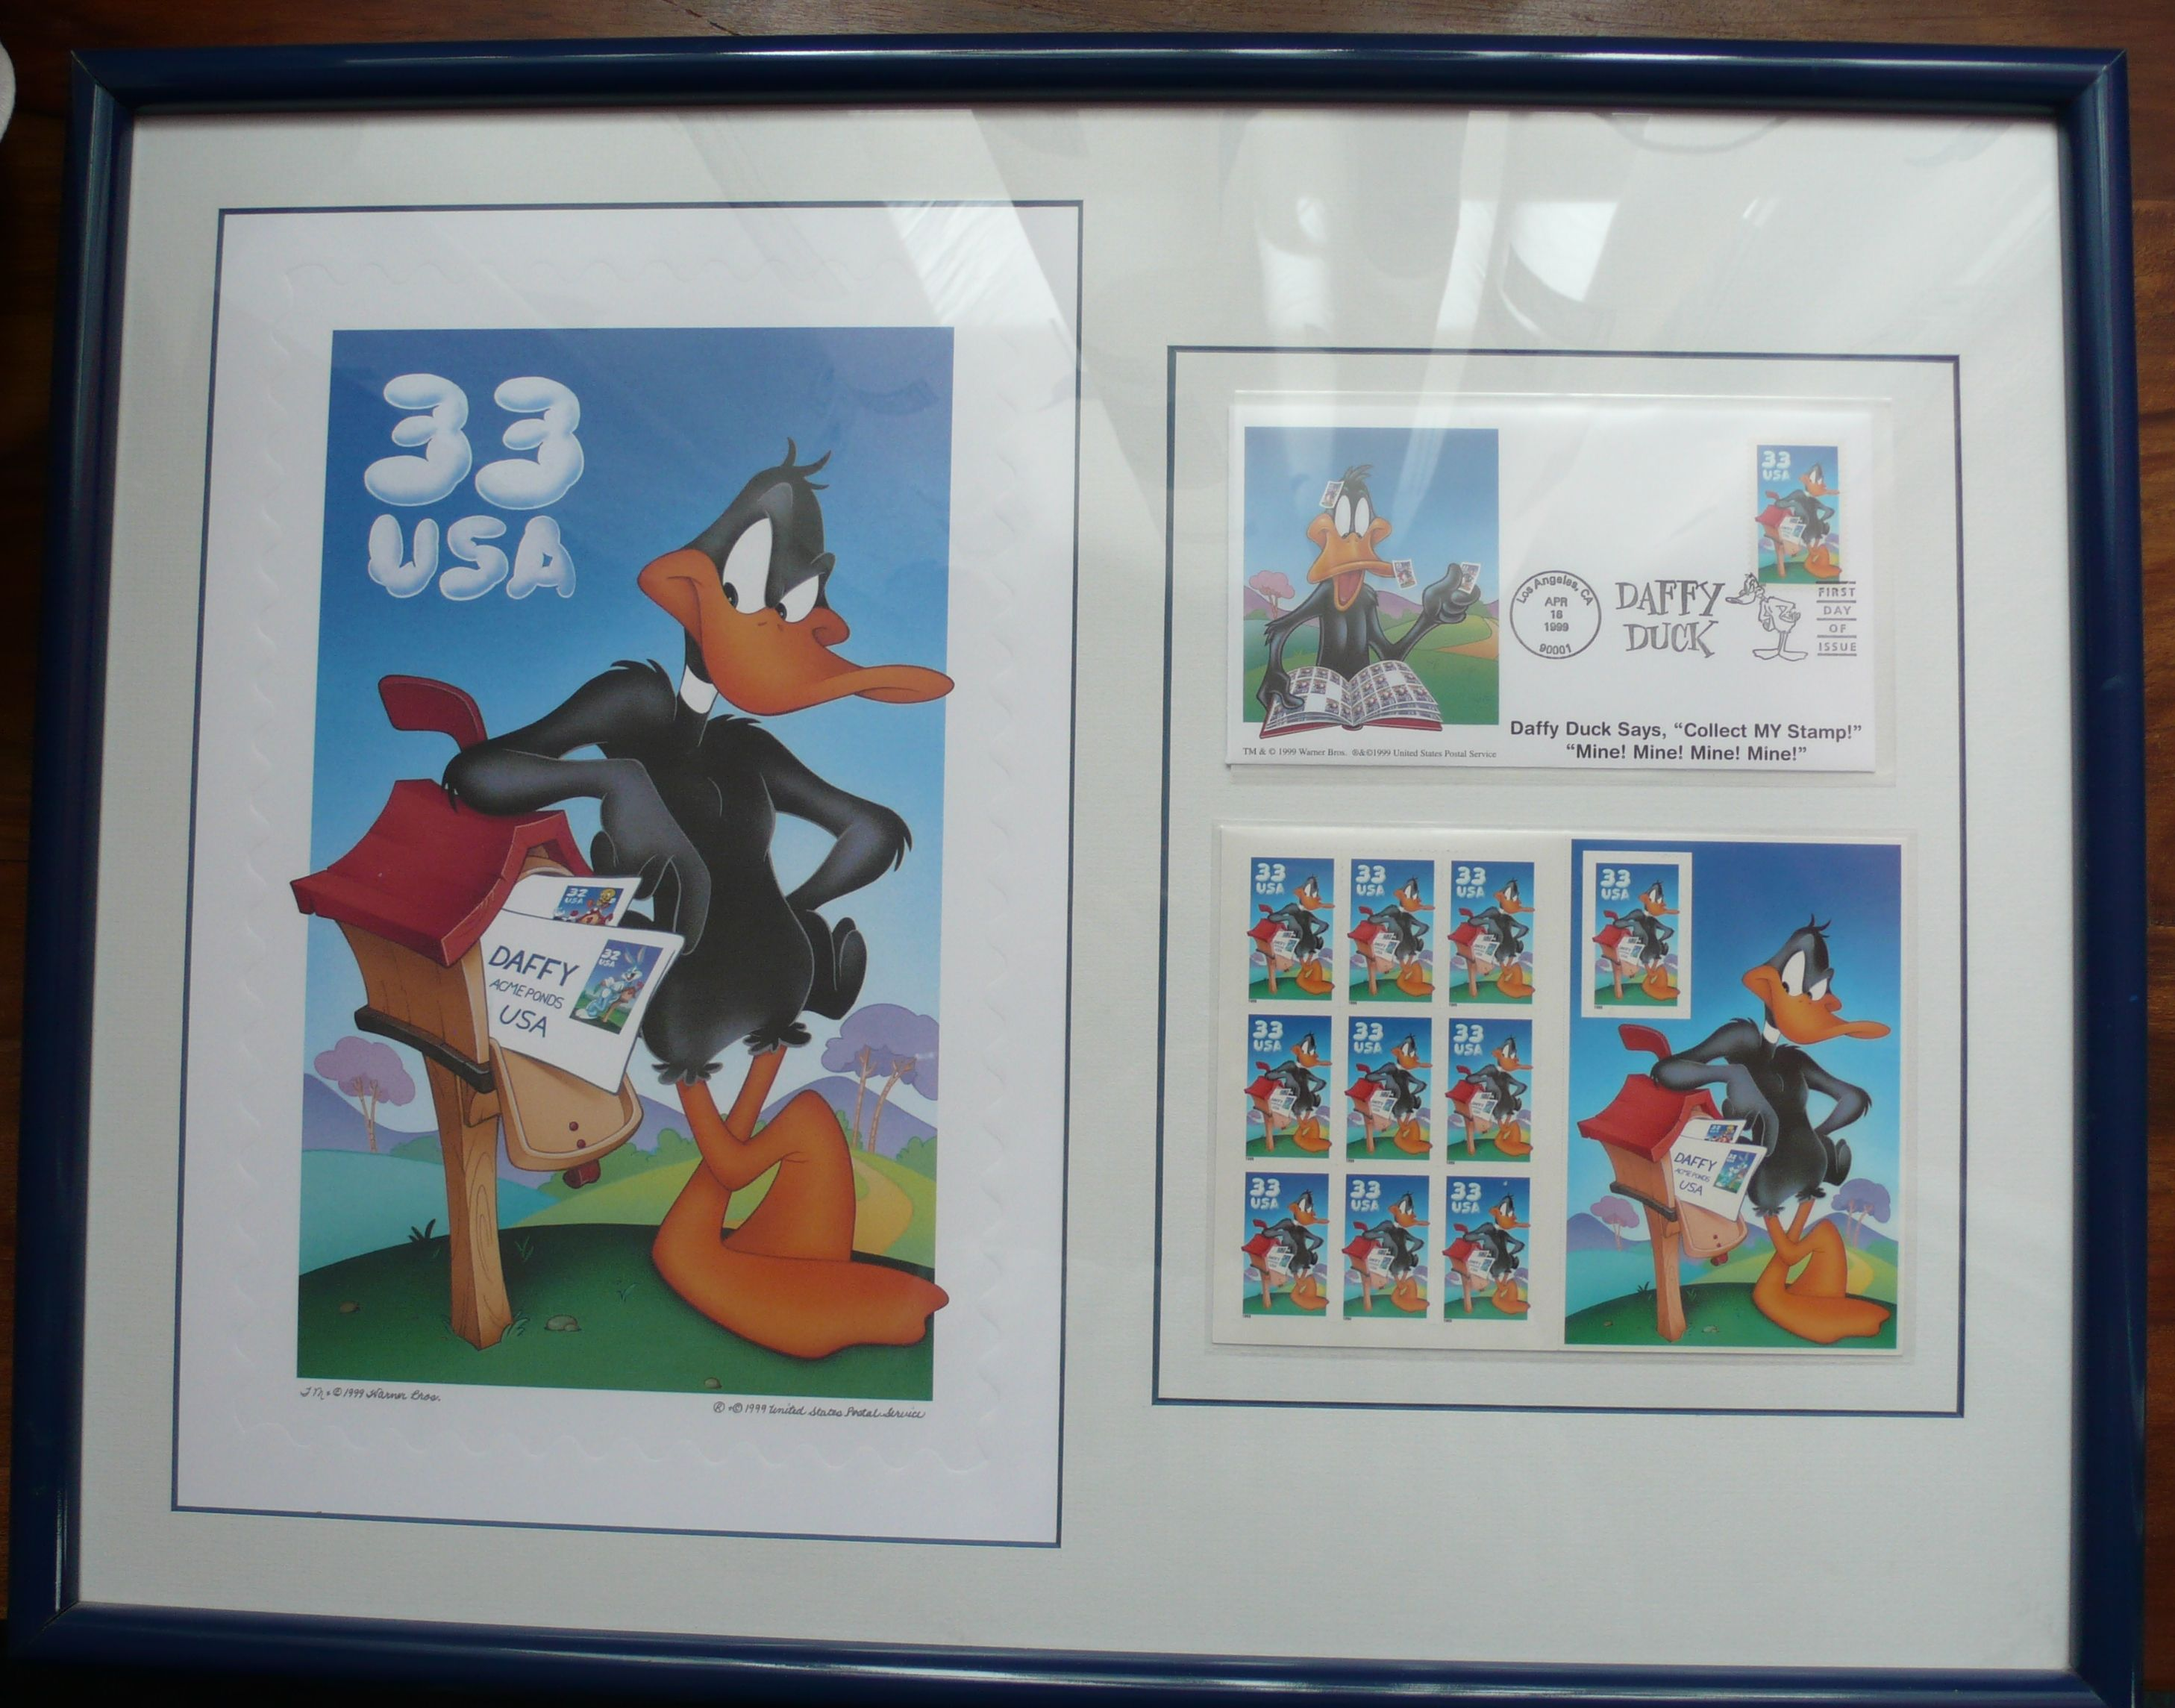 "DAFFY DUCK - STAMP ON A FIRST DAY COVER & PRINT - FRAMED - WARNER BROS LIMITED EDITION -  ""NEITHER BUGS NOR TWEETY NOR PUTTY TATS"" - WARNER BROS ANIMIATION ART 1999 - 3rd IN THE SERIES - PLUS CERTIFICATE OF AUTHENTICITY - IN MINT CONDITION -FRAMED ABOUT 17"" x 21"" - AVAILABLE FOR £125 PLUS POSTAGE"